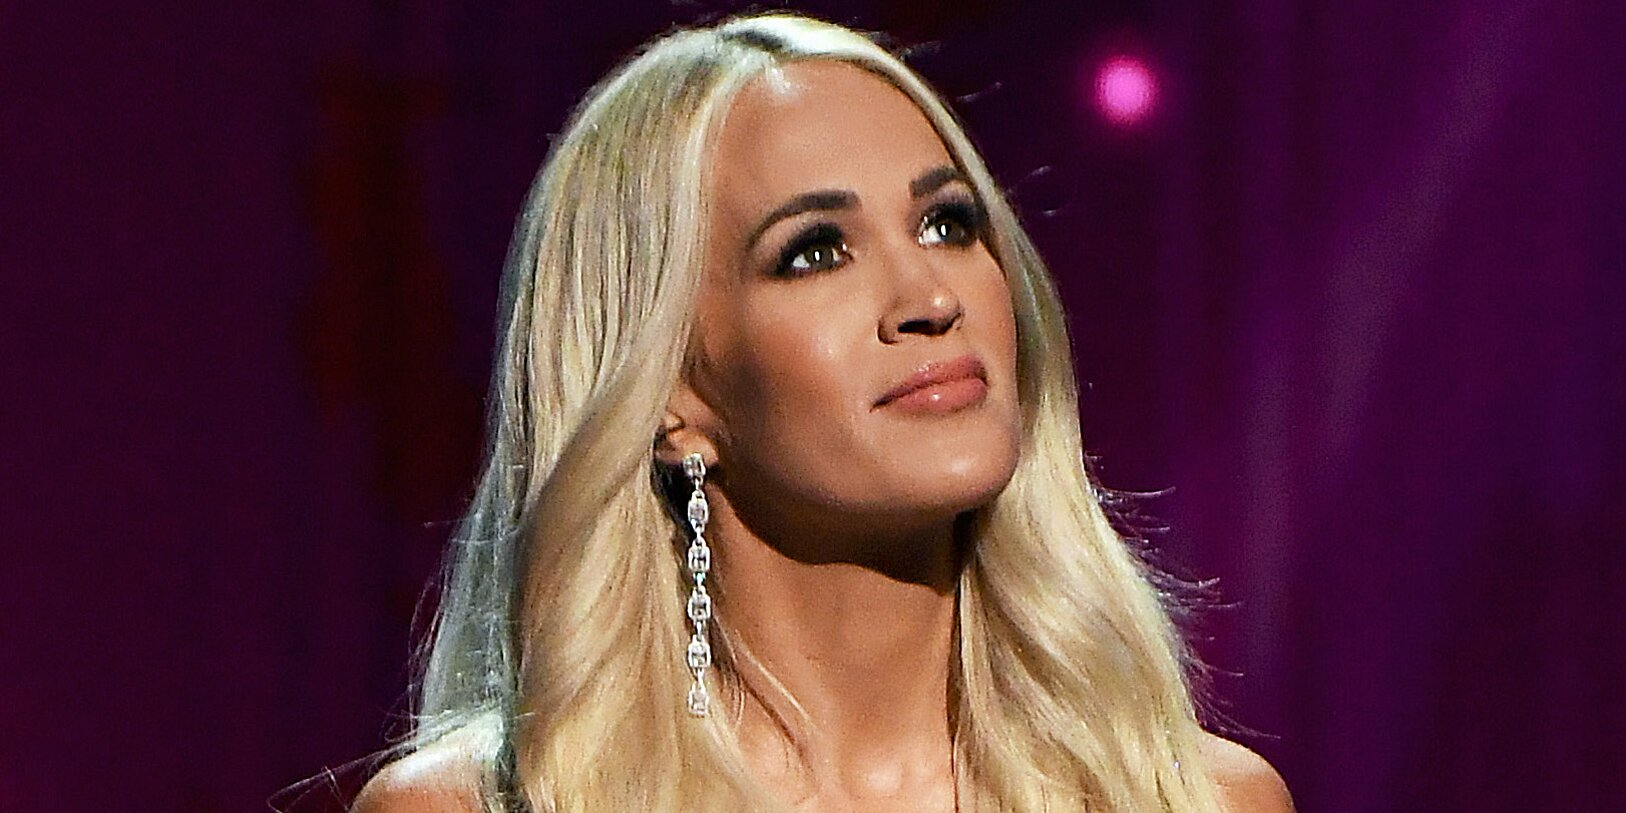 The Internet May Never Stop Talking About Carrie Underwood's Stunning ACMs Dress